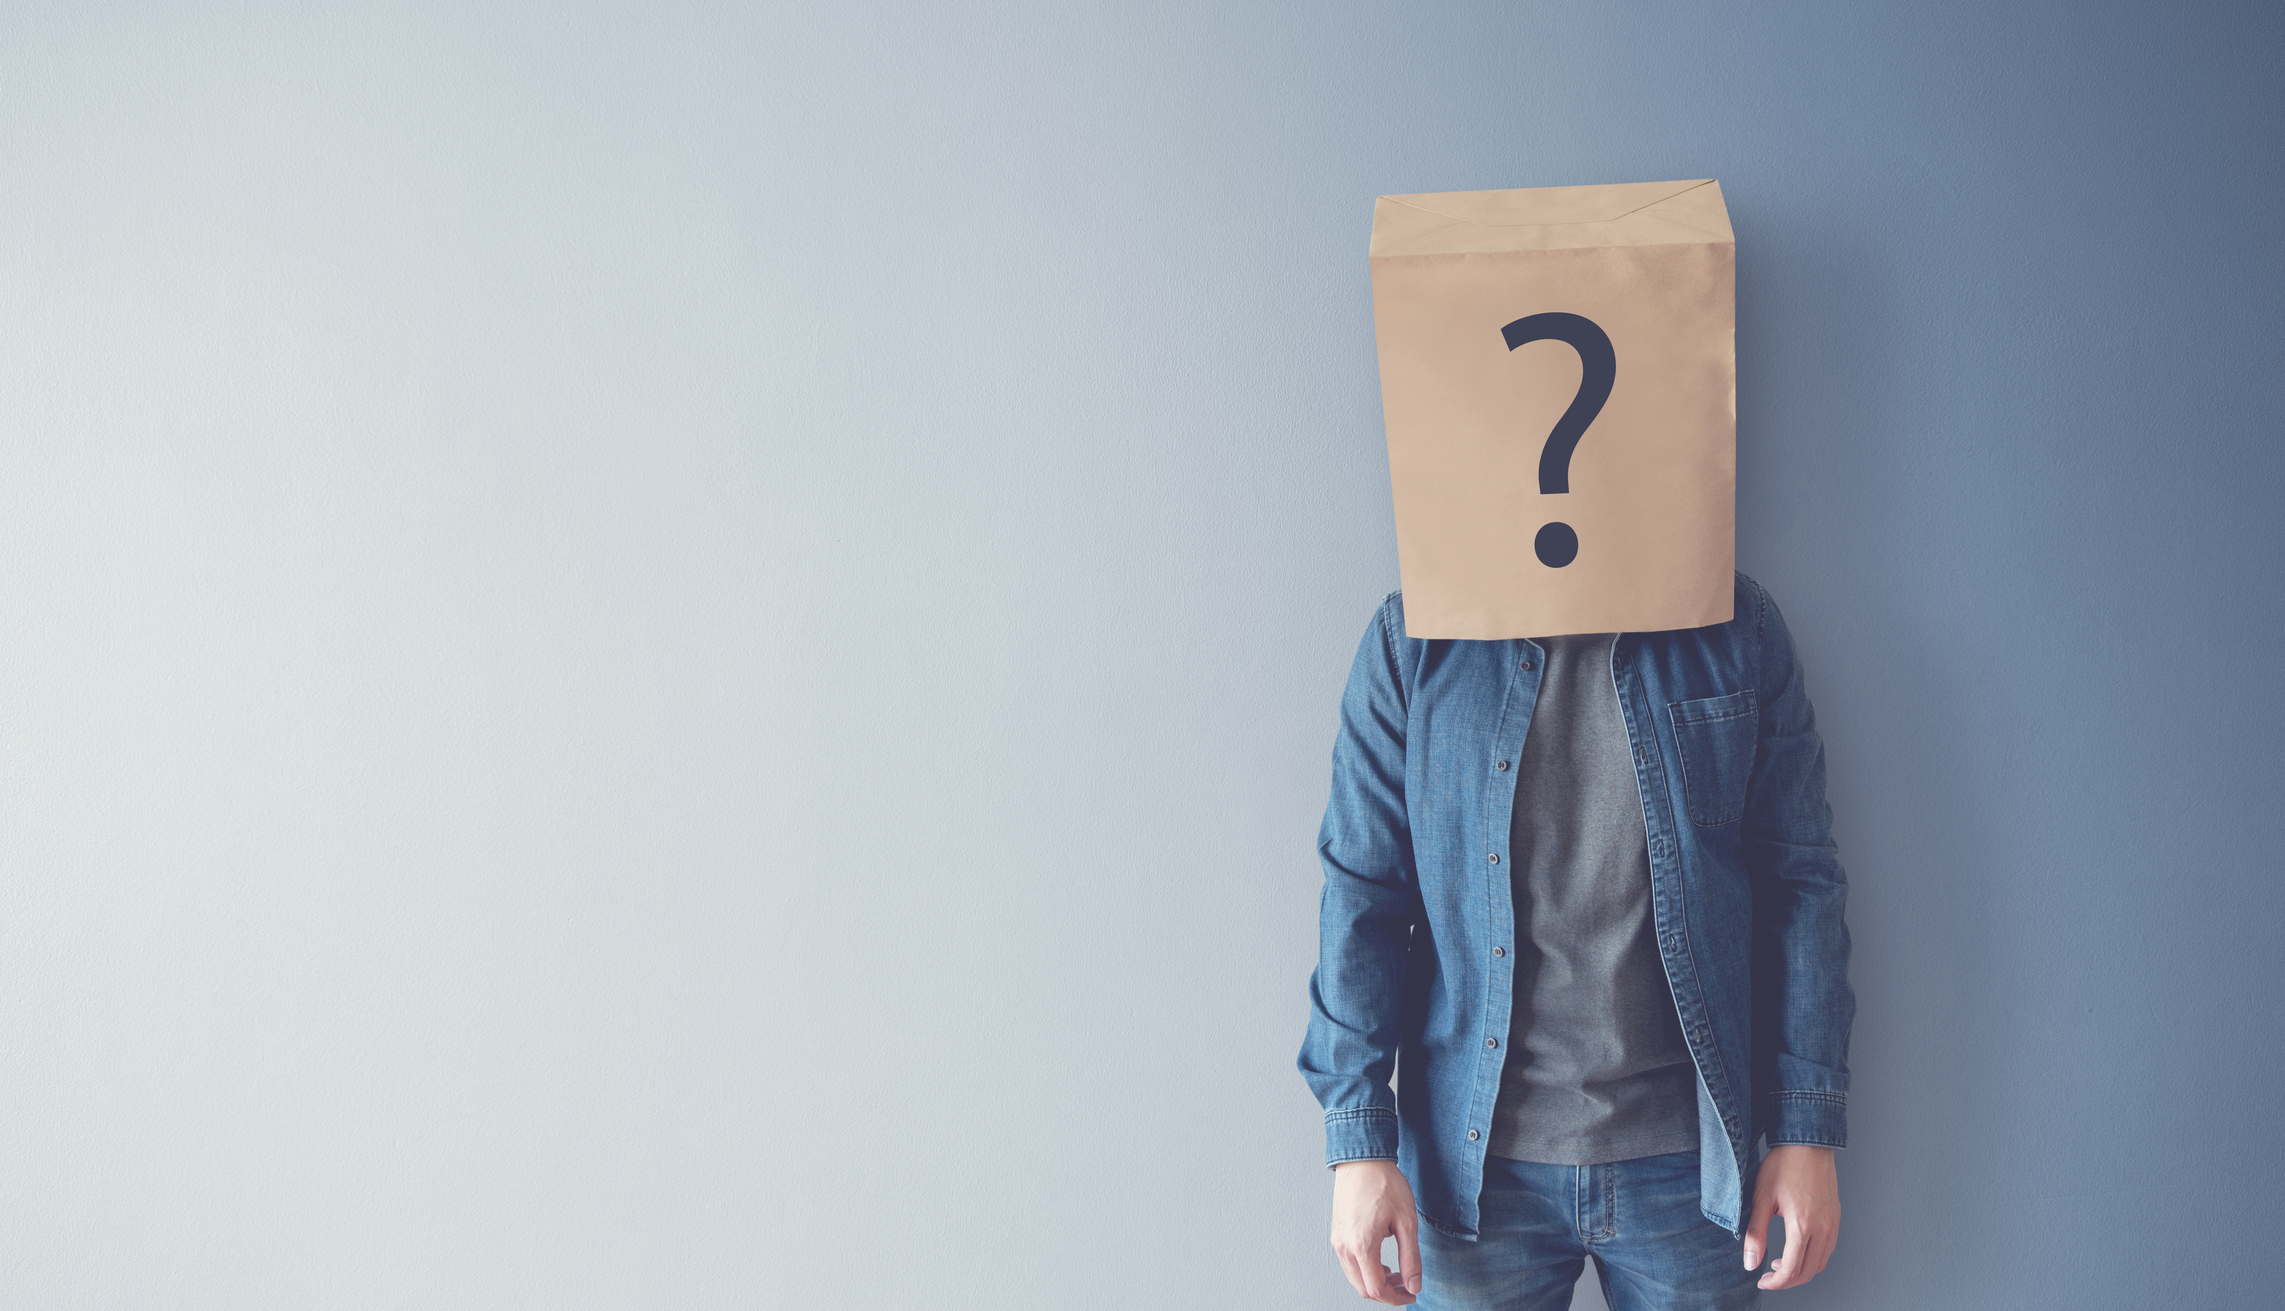 Man has Confused, Thinking, Question Mark Icon on Paper Bag, copy space.